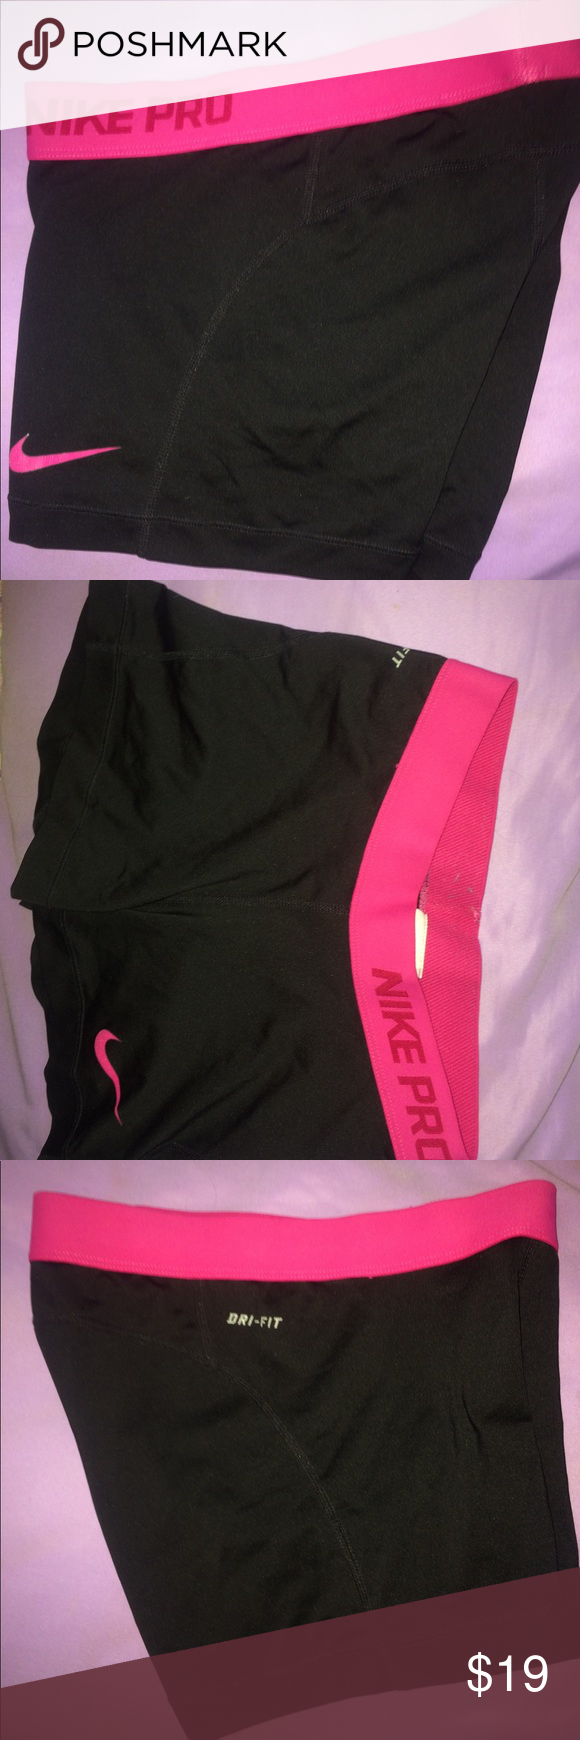 Nike Pros S Comfortable black spandex with a pink logo on the left thigh and a pink rim along the top (dri-fit) Nike Other #pinkrims Nike Pros S Comfortable black spandex with a pink logo on the left thigh and a pink rim along the top (dri-fit) Nike Other #pinkrims